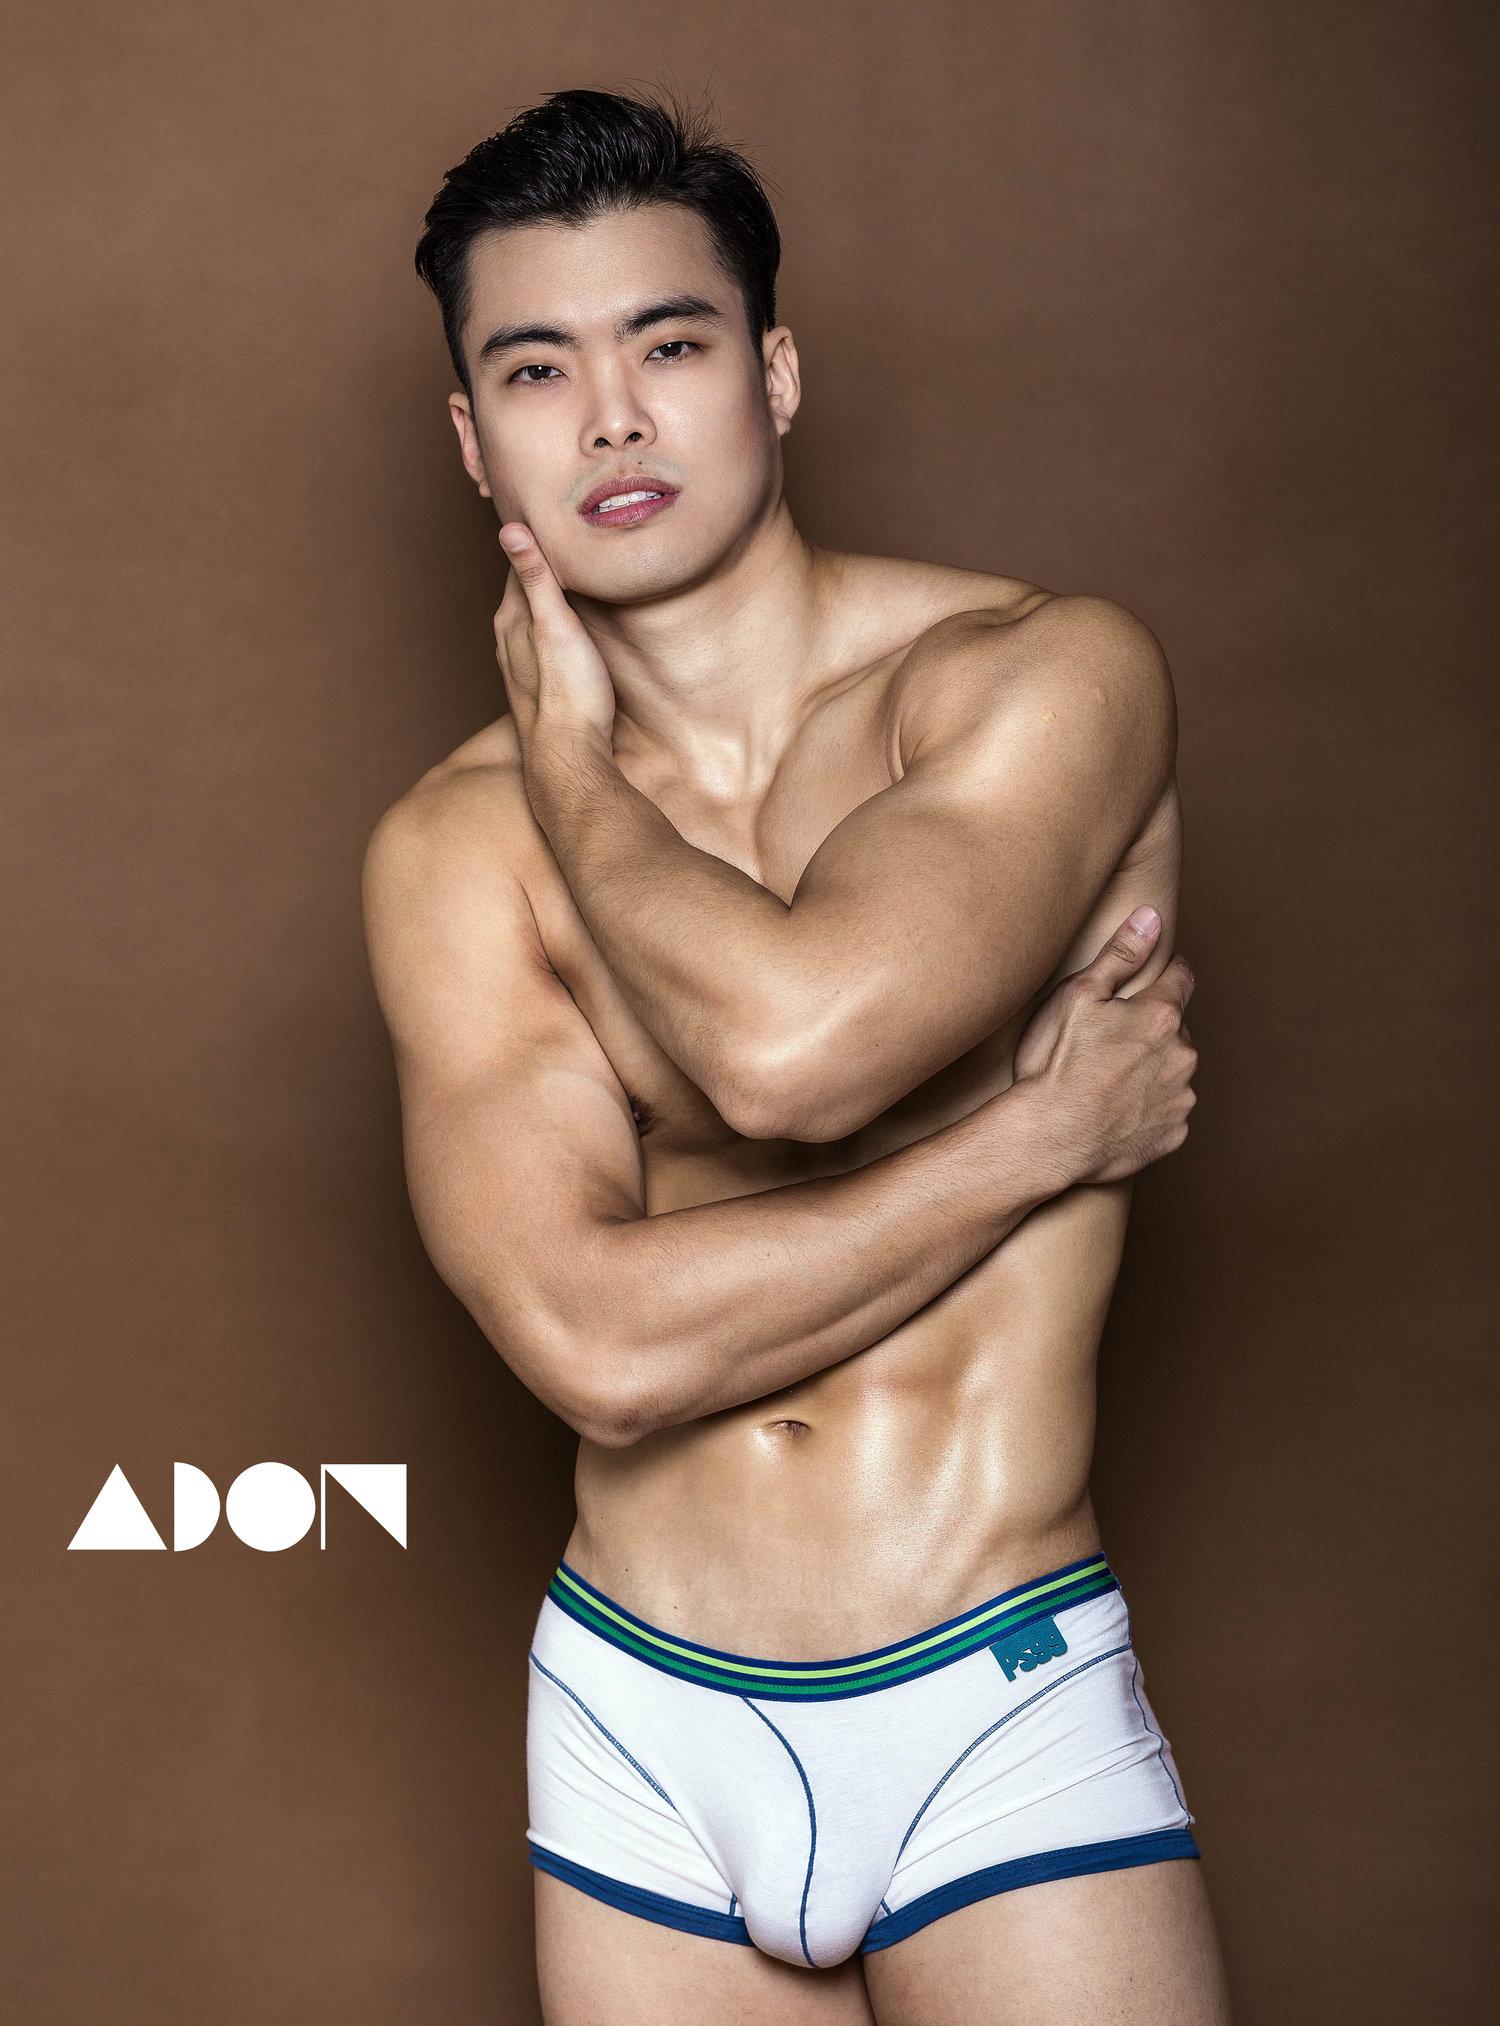 Adon Exclusive: Model Jonathan Wong By Jason Oung